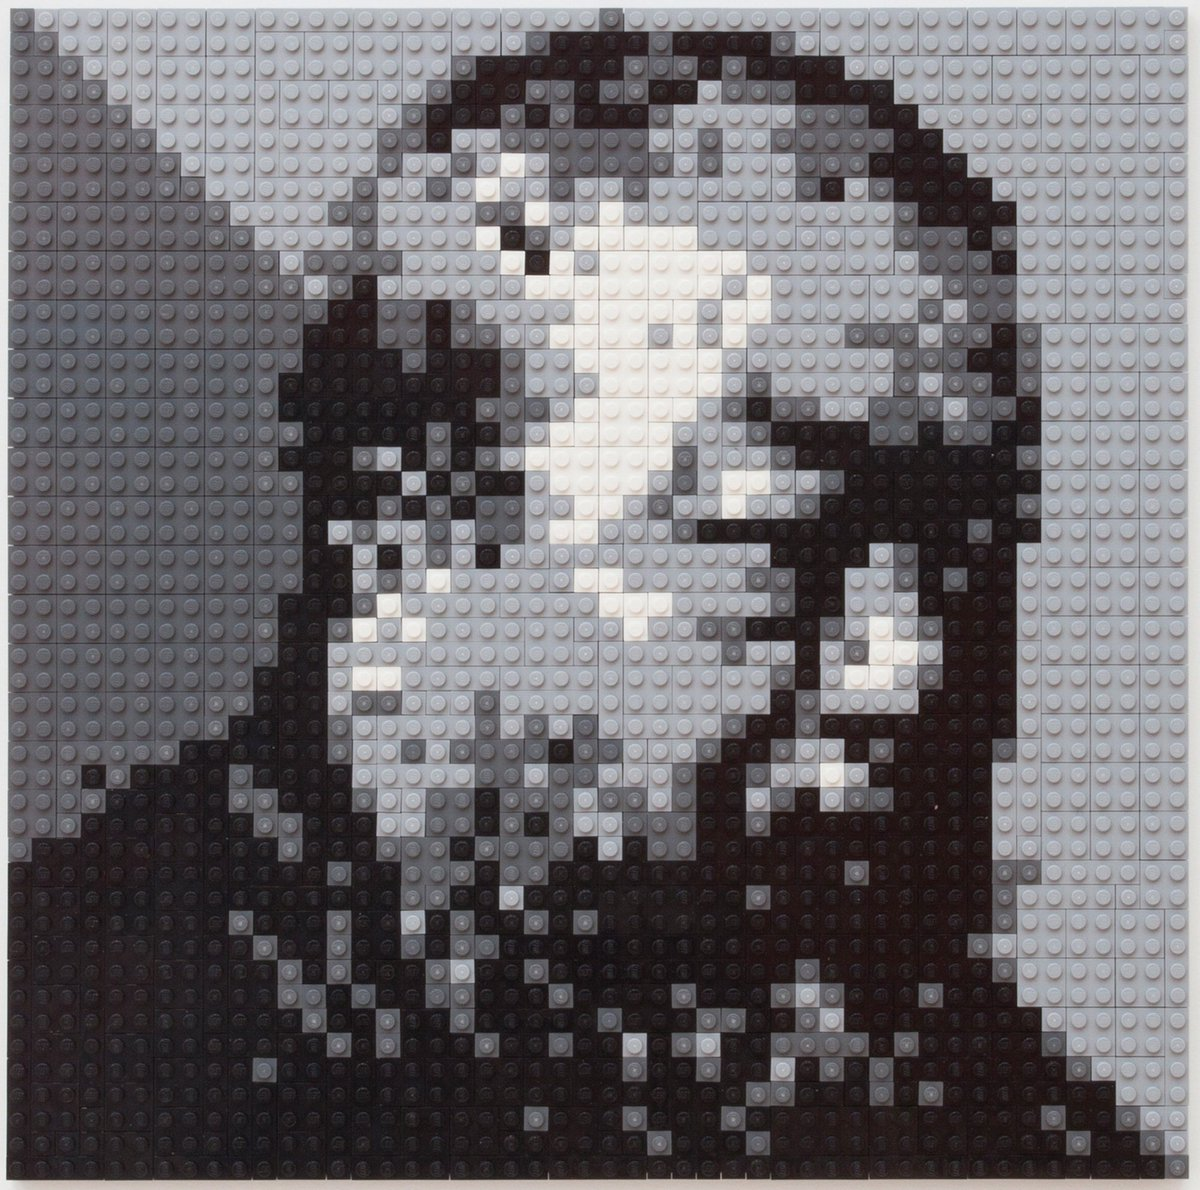 Ai Weiwei (@aiww): Toronto LEGO Collection Point https://t.co/yIVND0TUPz on @agotoronto site #legosforweiwei. https://t.co/jdeL5XwCxC